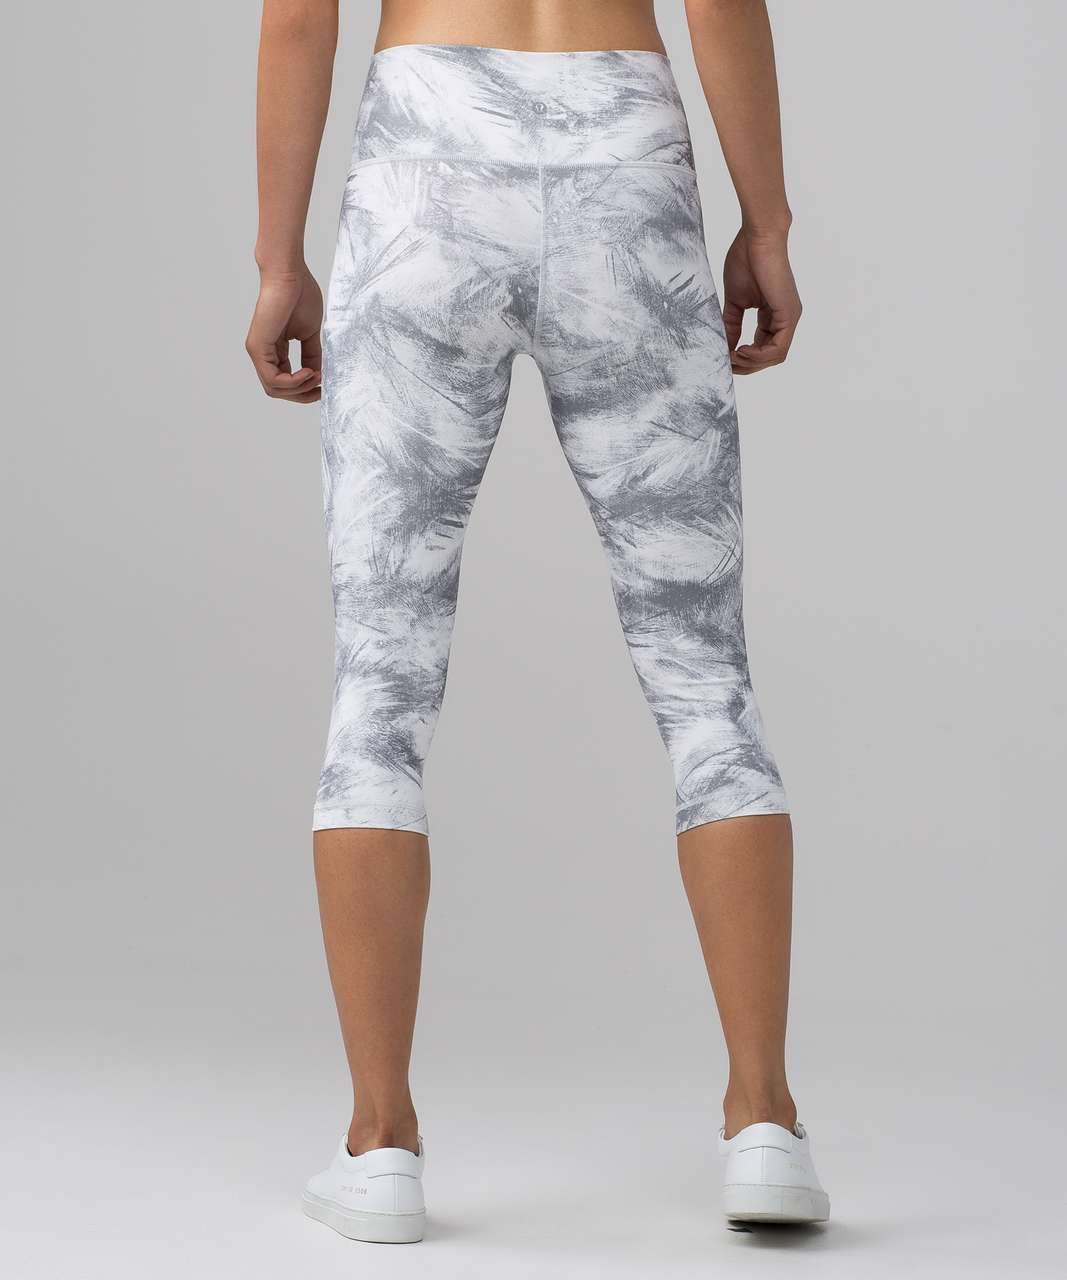 Lululemon Wunder Under 1/2 Tight (High Rise) *Fullux - Breeze By White Light Cast